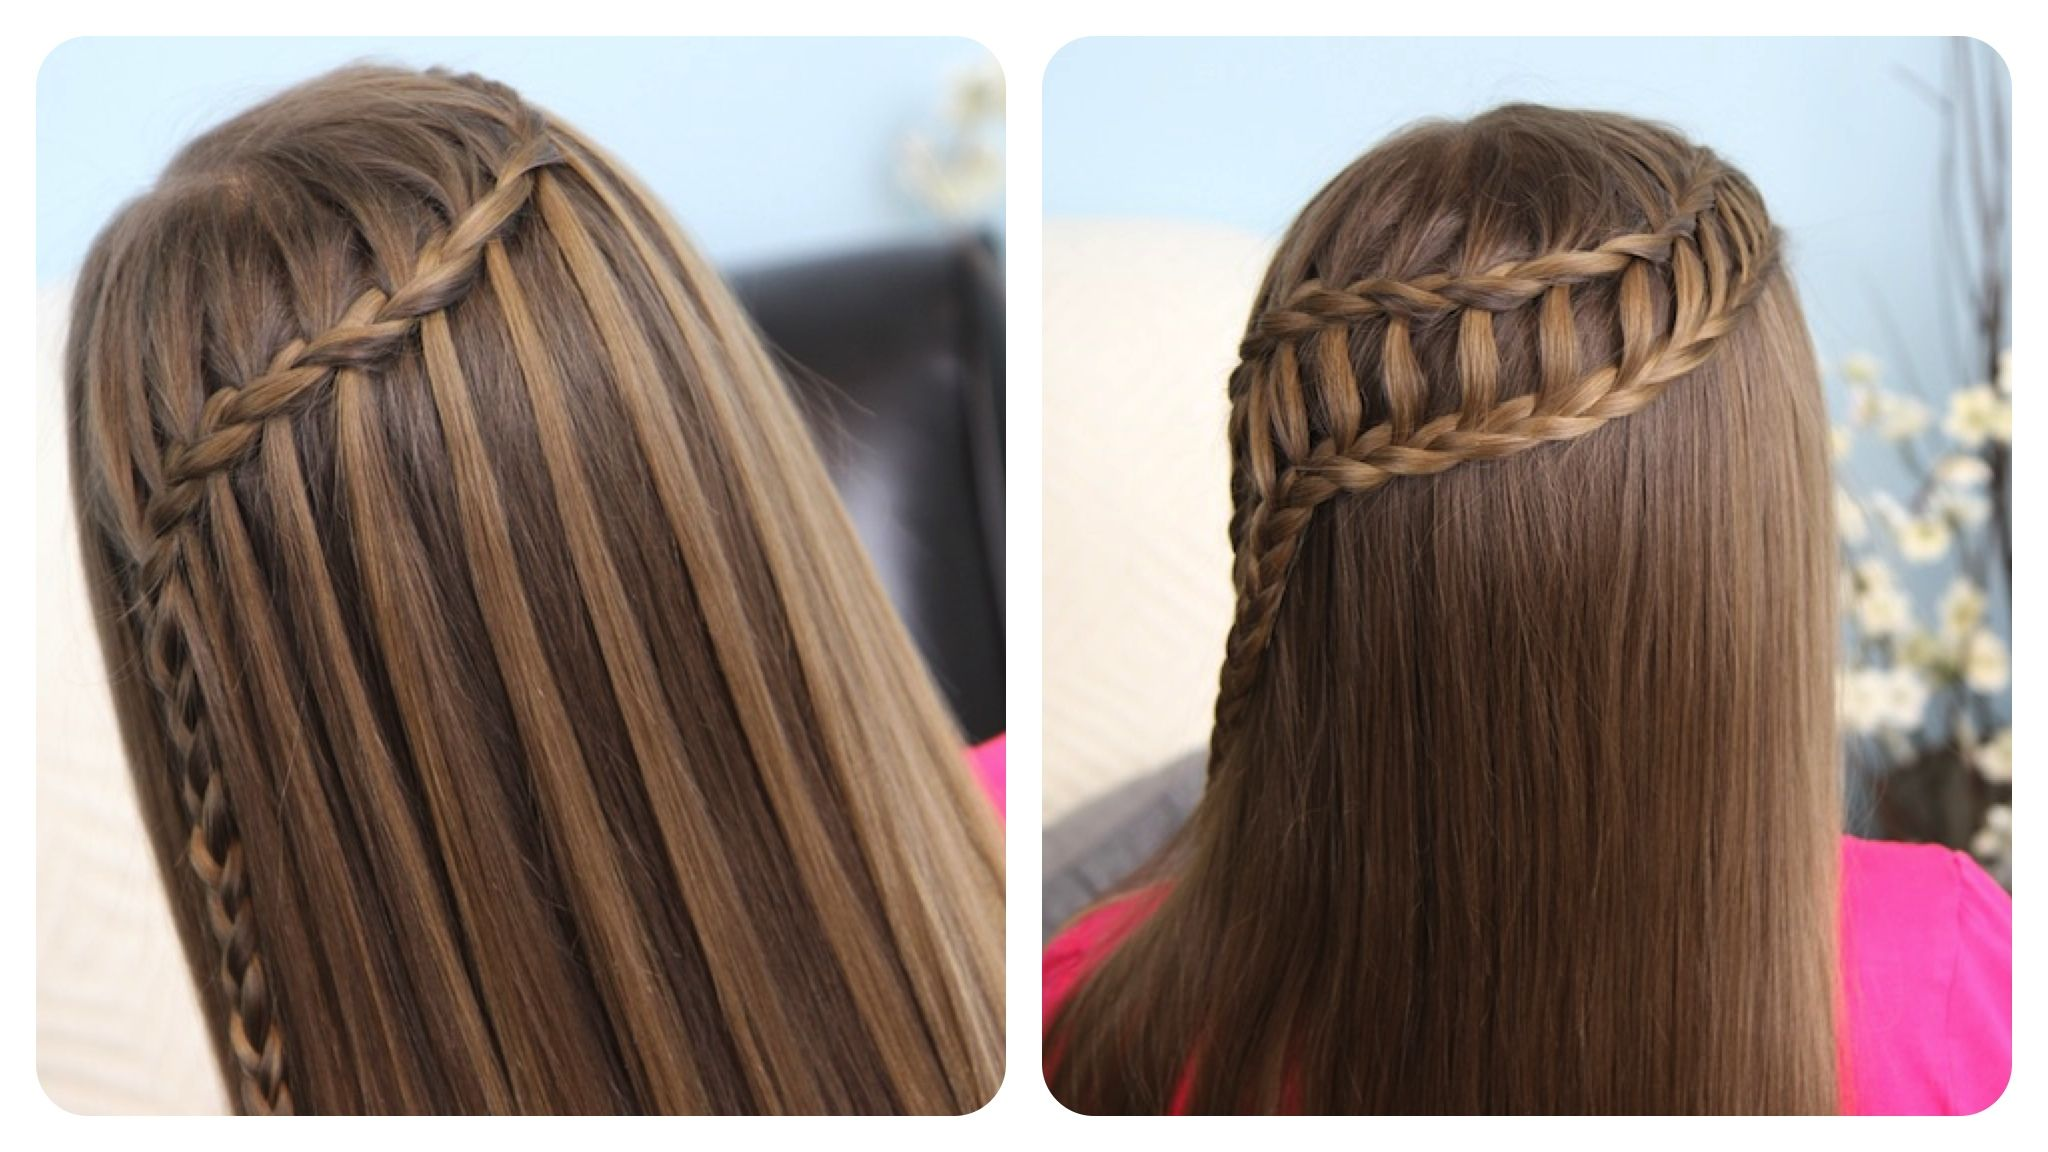 Hairstyles cute girl hairstyles waterfall braid u ladder braid